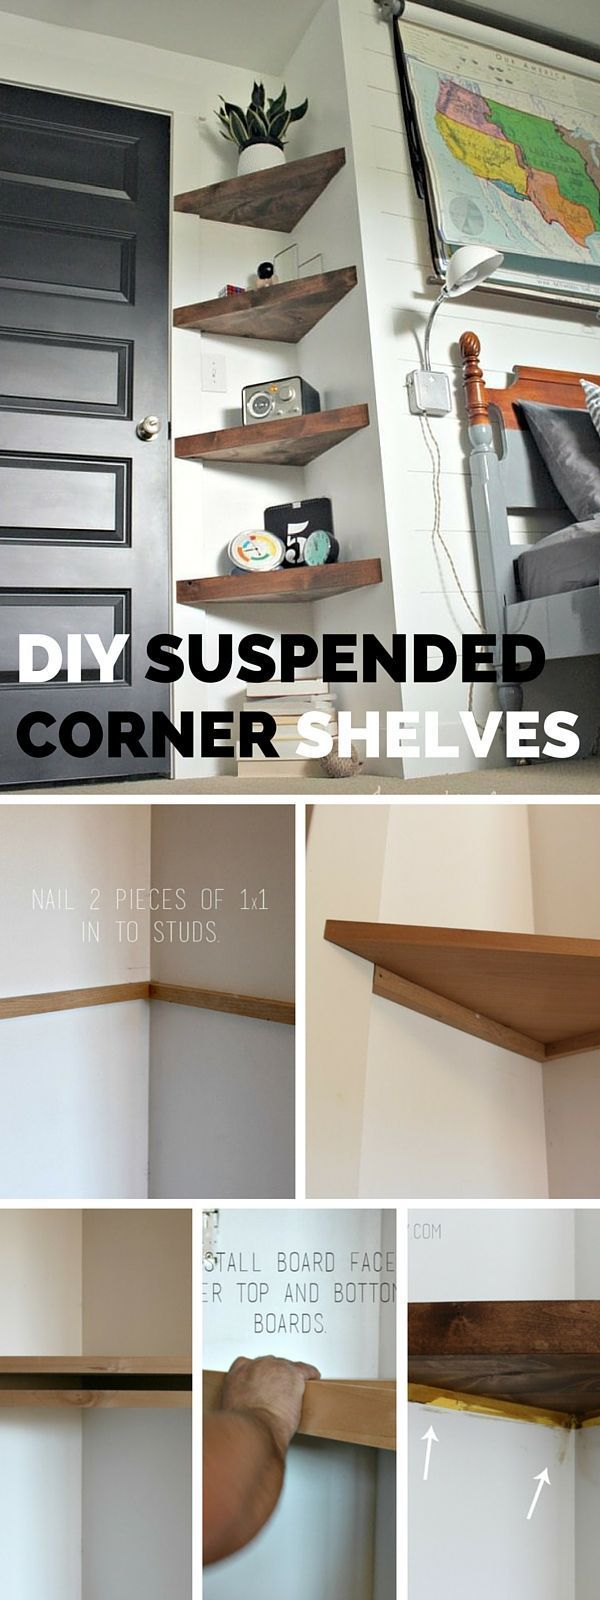 12 Simply Genius DIY Storage Solutions For A Neat Home